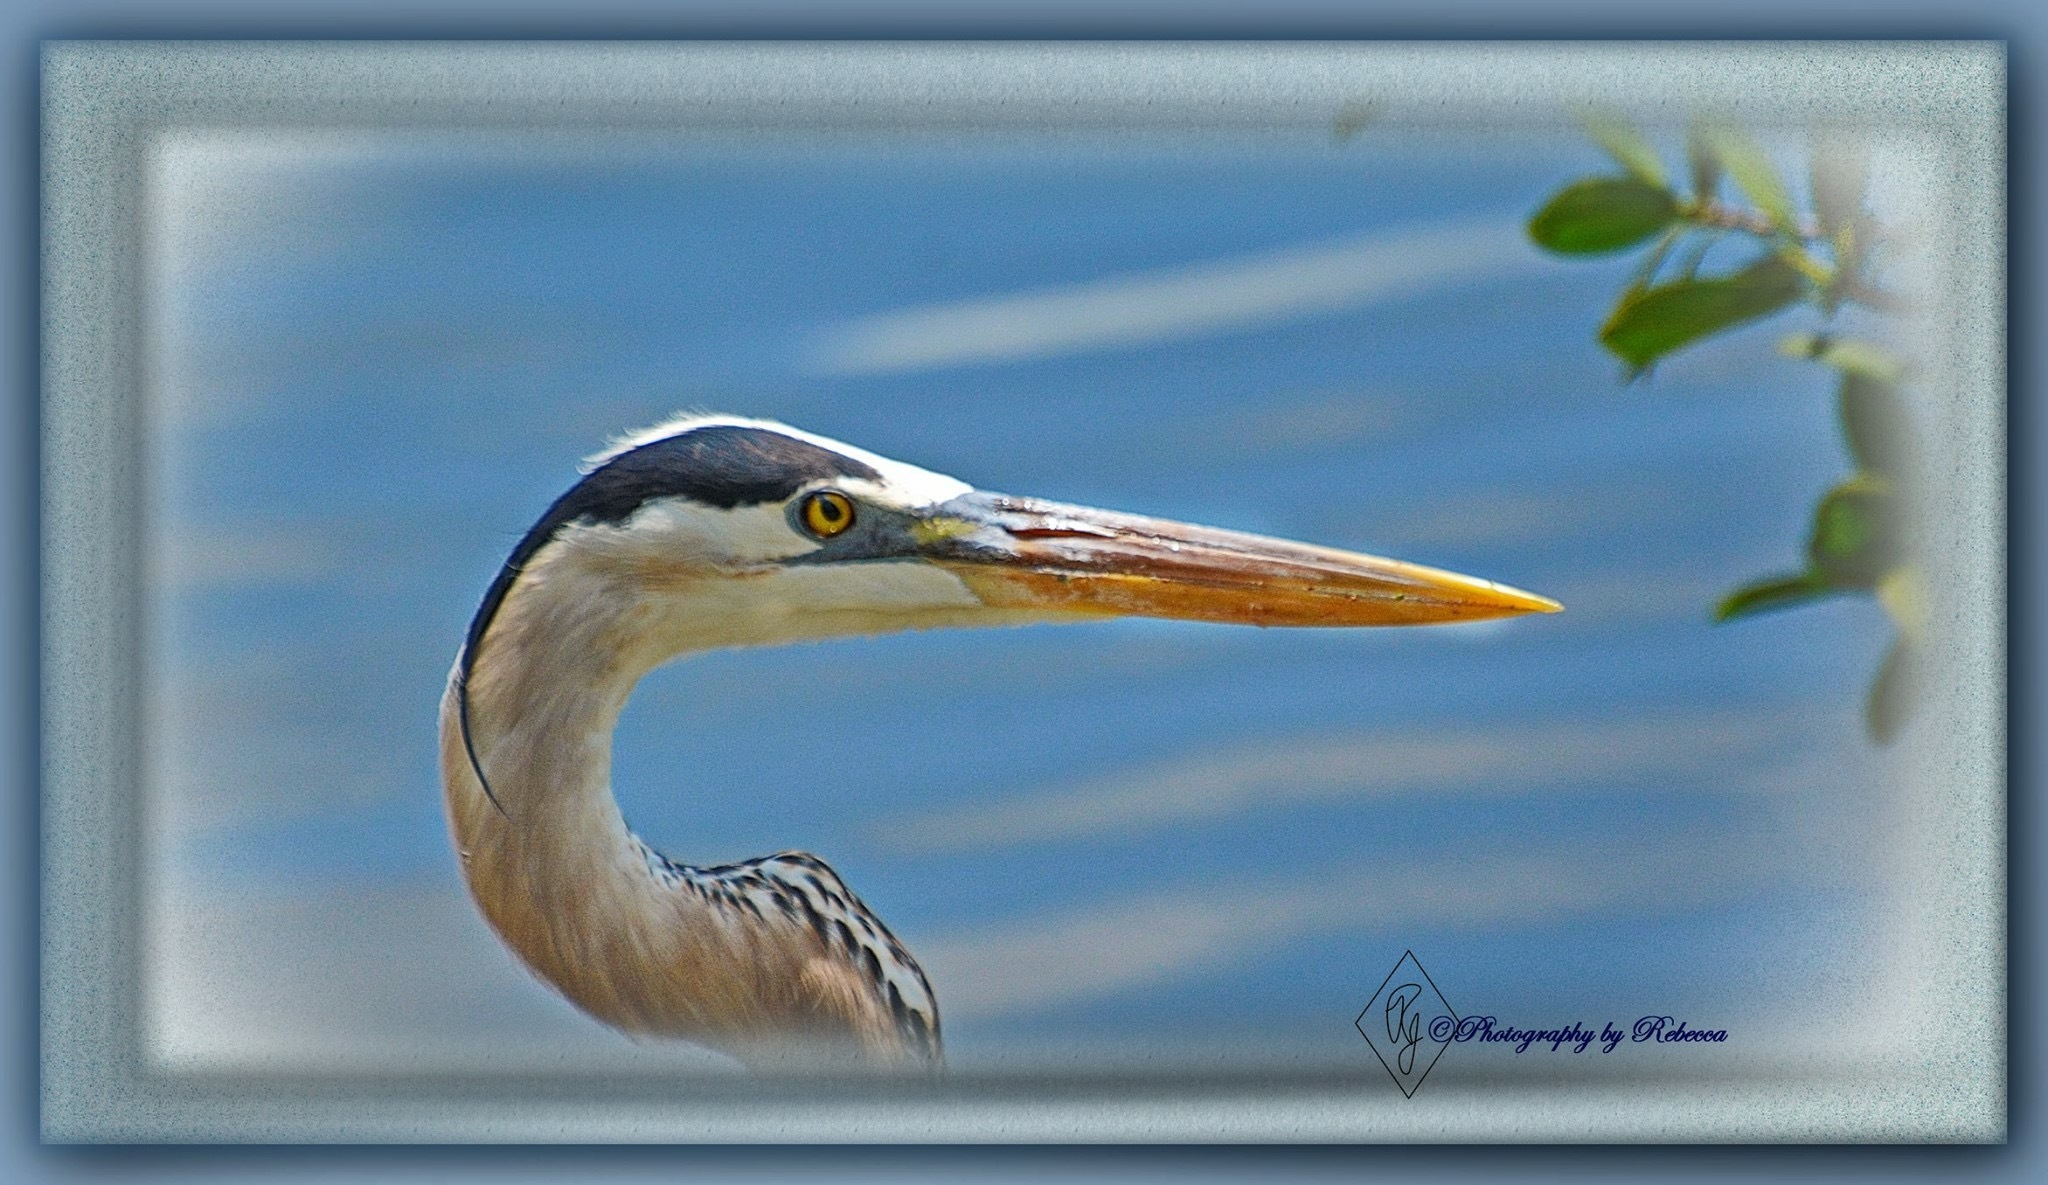 Up close and personal after he ate the fish by Rebecca J.